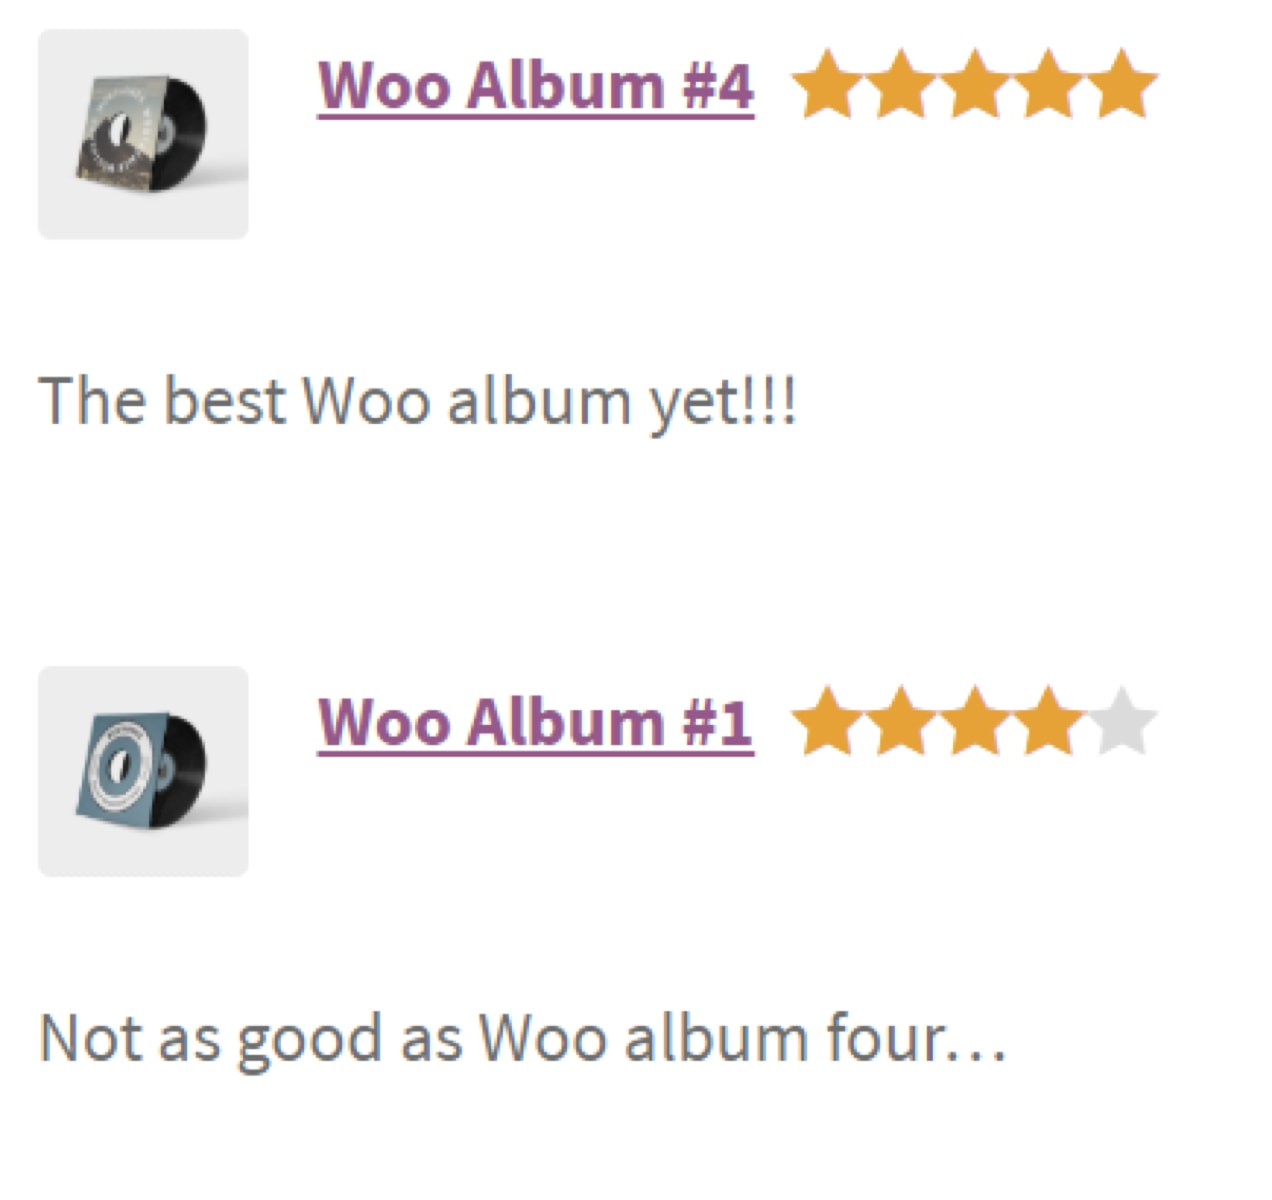 reviews listed in a column